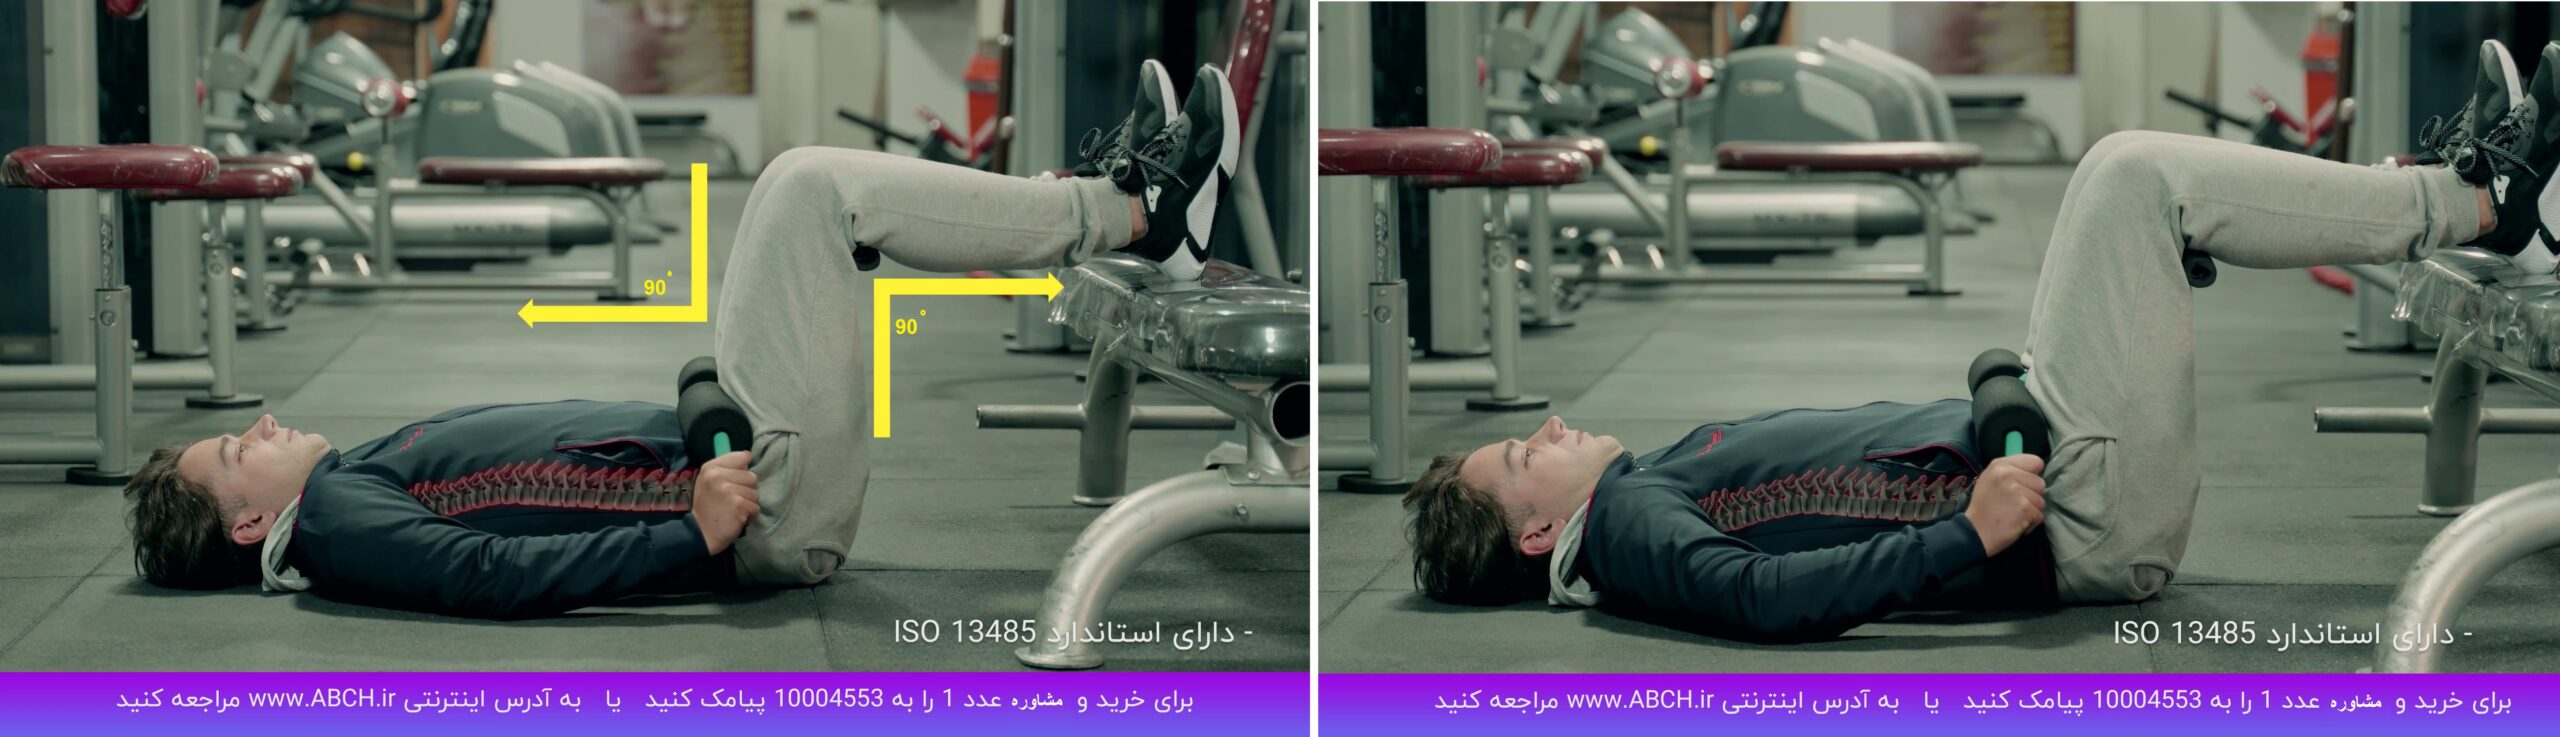 T1 T2 2160p0008132020 12 15 19 05 451 scaled - دستگاه کشش ستون فقرات ( ترکشن ) t1